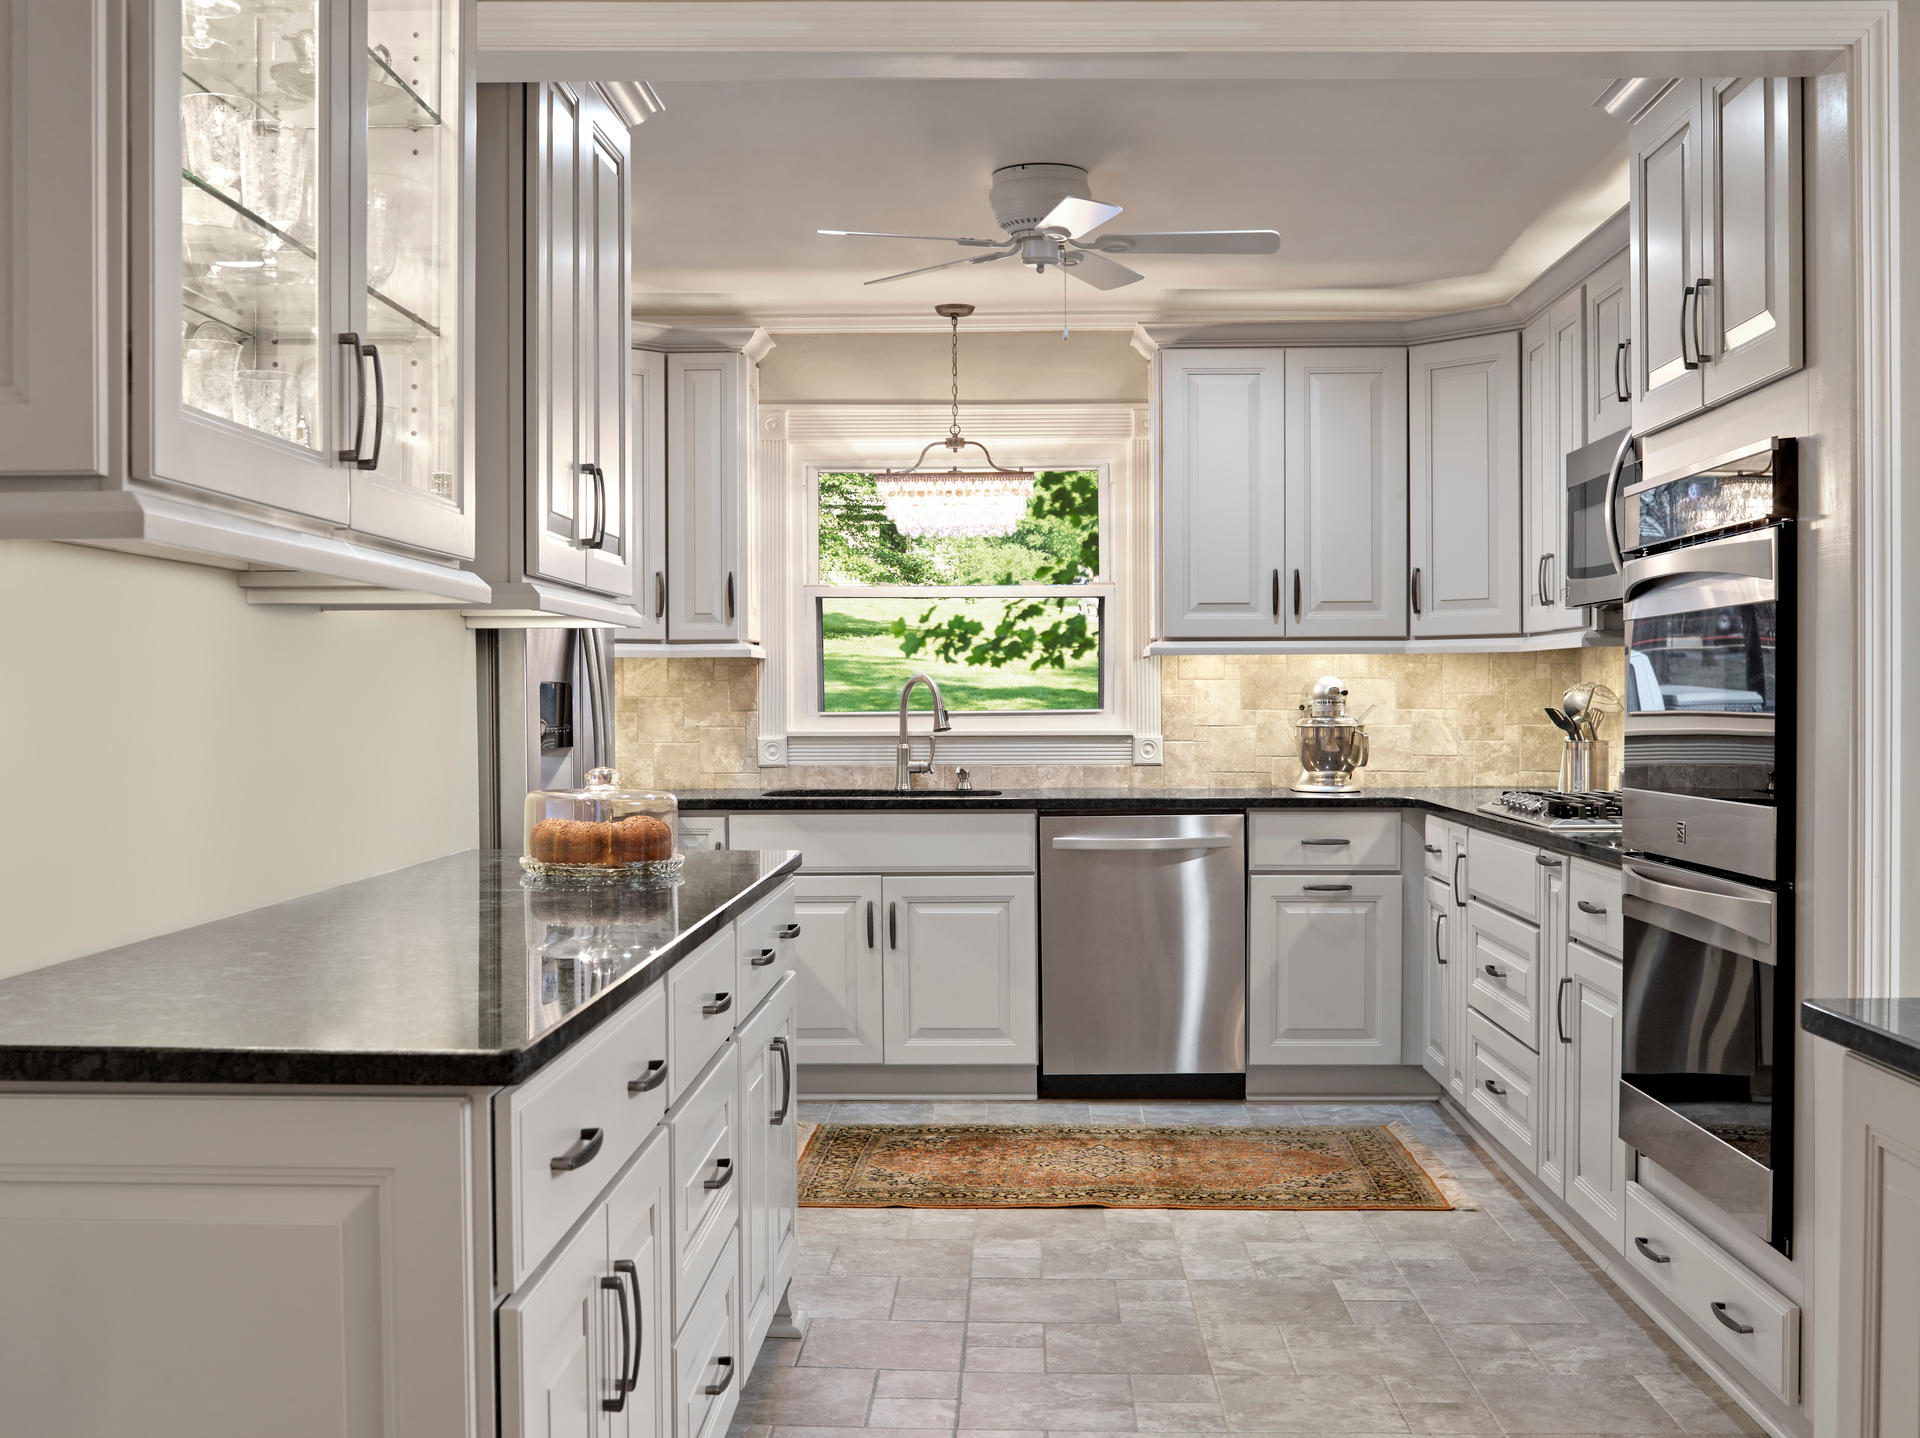 Us Stone Outlet Cabinets Countertops Of Baton Rouge Baton Rouge Louisiana La